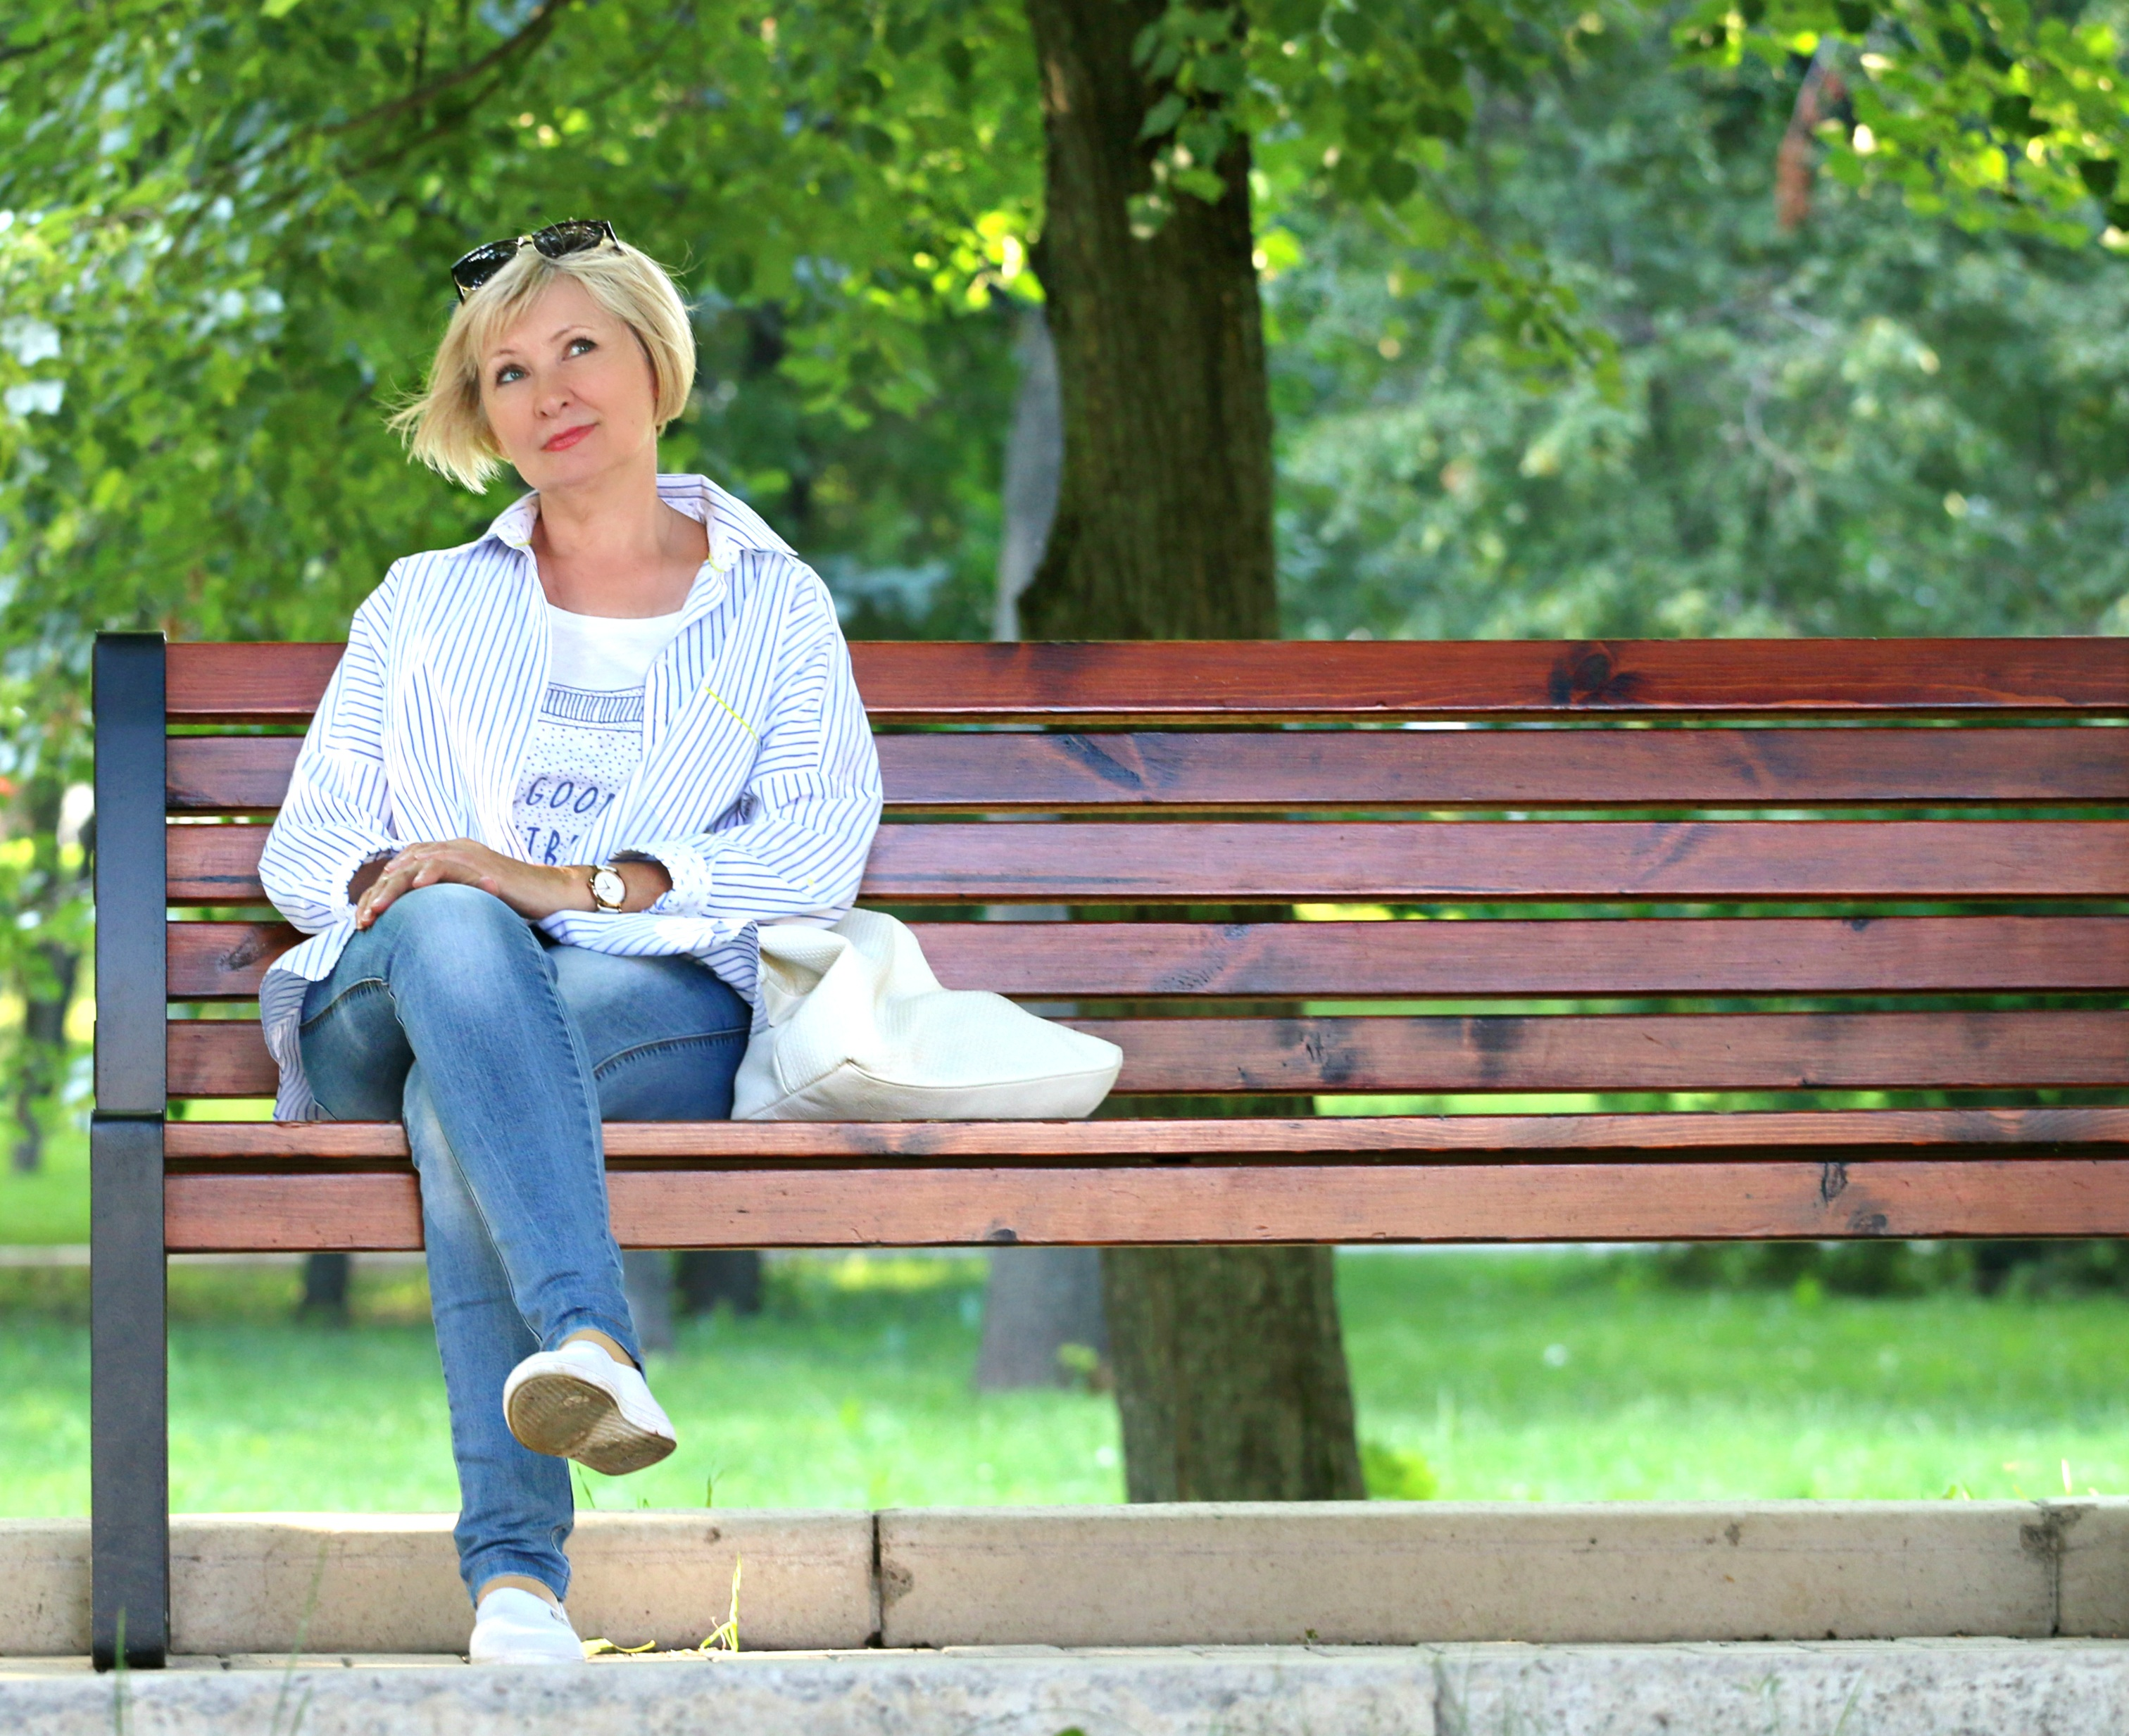 woman-bench-stand-by-blonde-157622